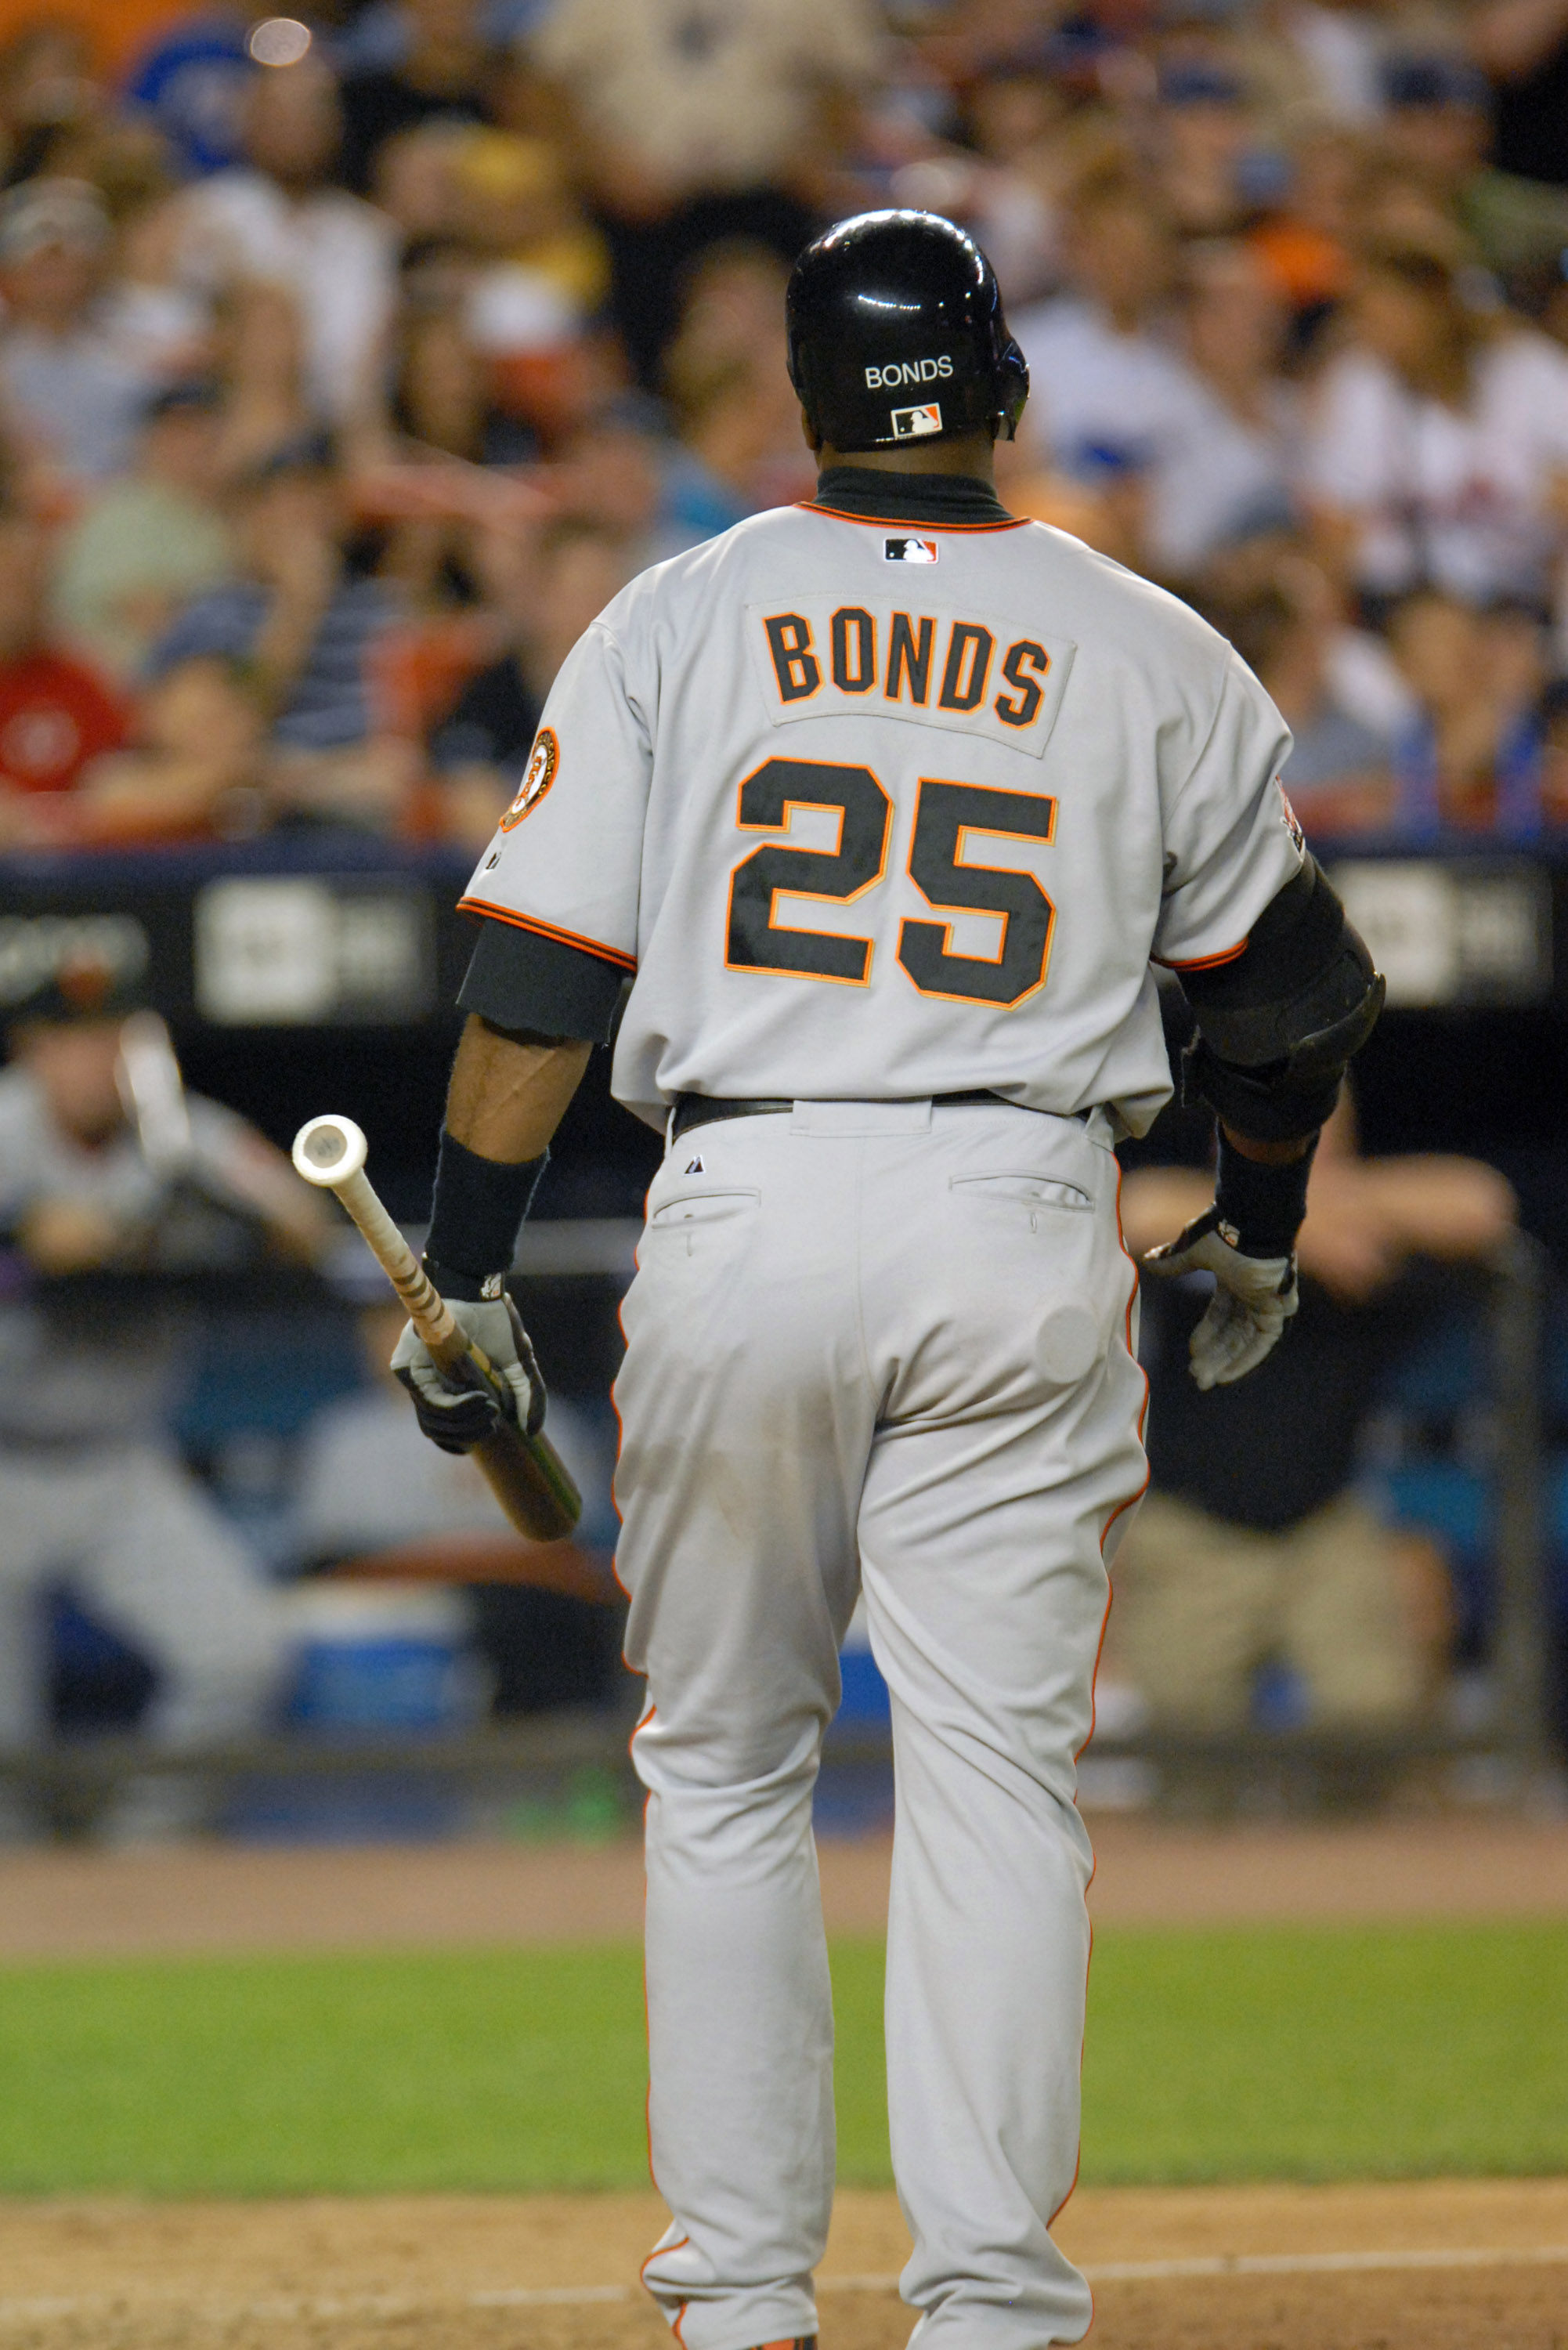 Barry Bonds During the San Francisco Giants vs New York Mets Game - May 30, 2007